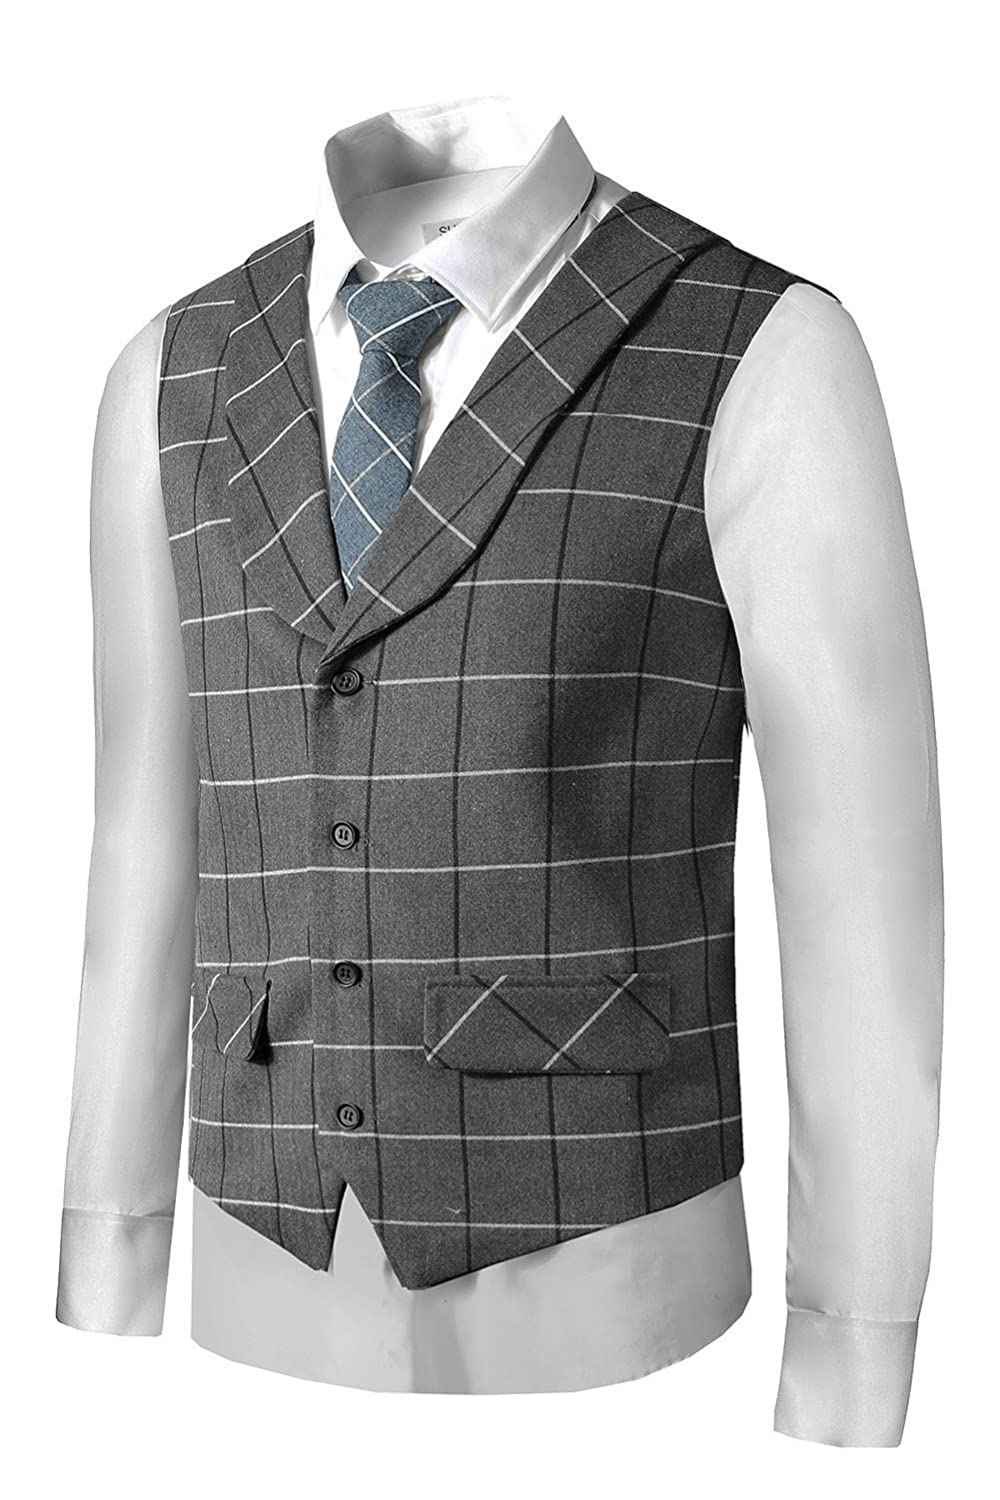 1920s Style Mens Vests Hanayome Mens Gentleman Top Design Casual Waistcoat Business Suit Vest VS17 $28.50 AT vintagedancer.com